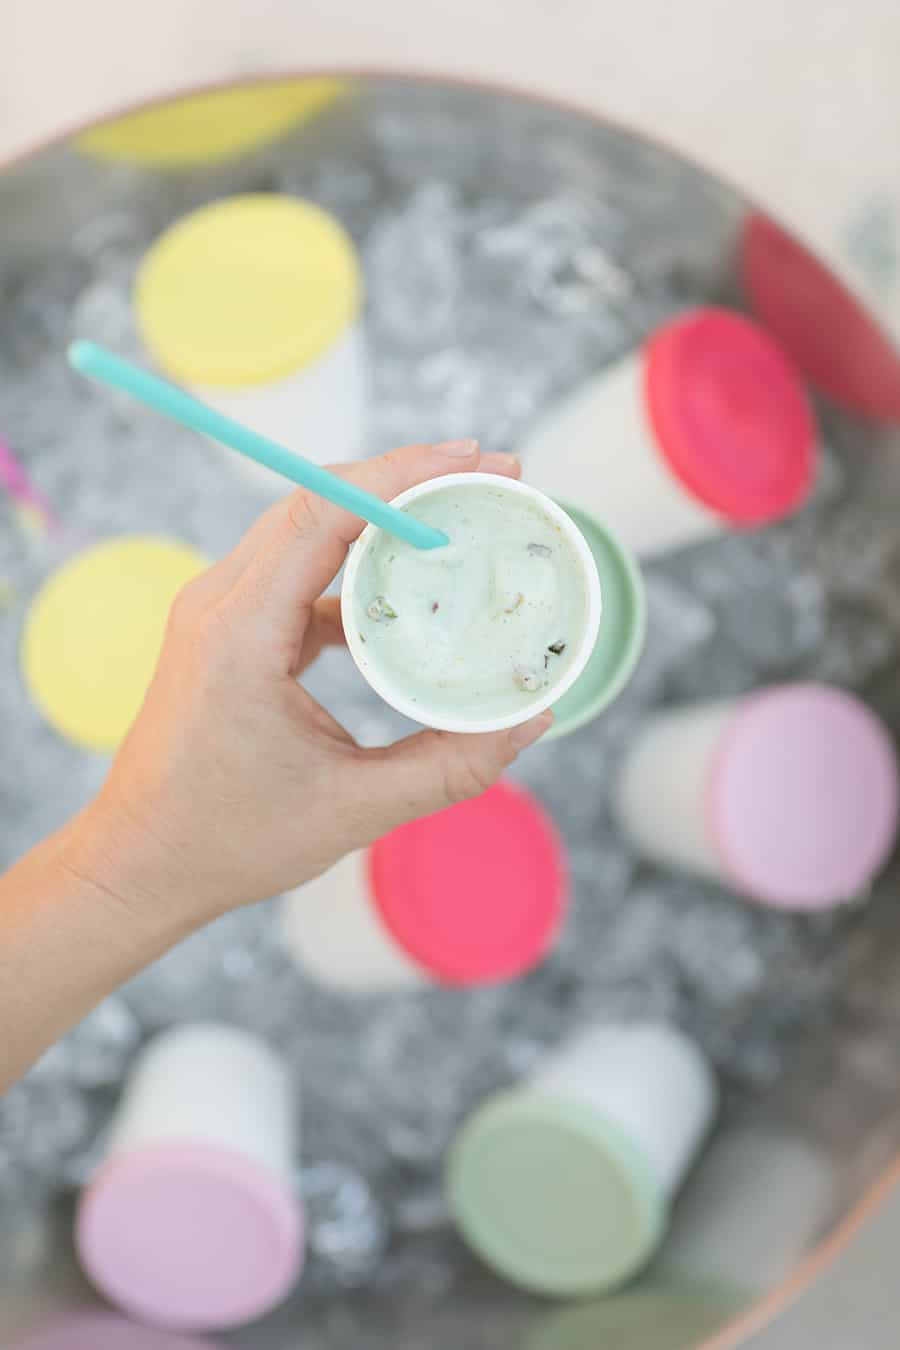 Ice cream in white cup.